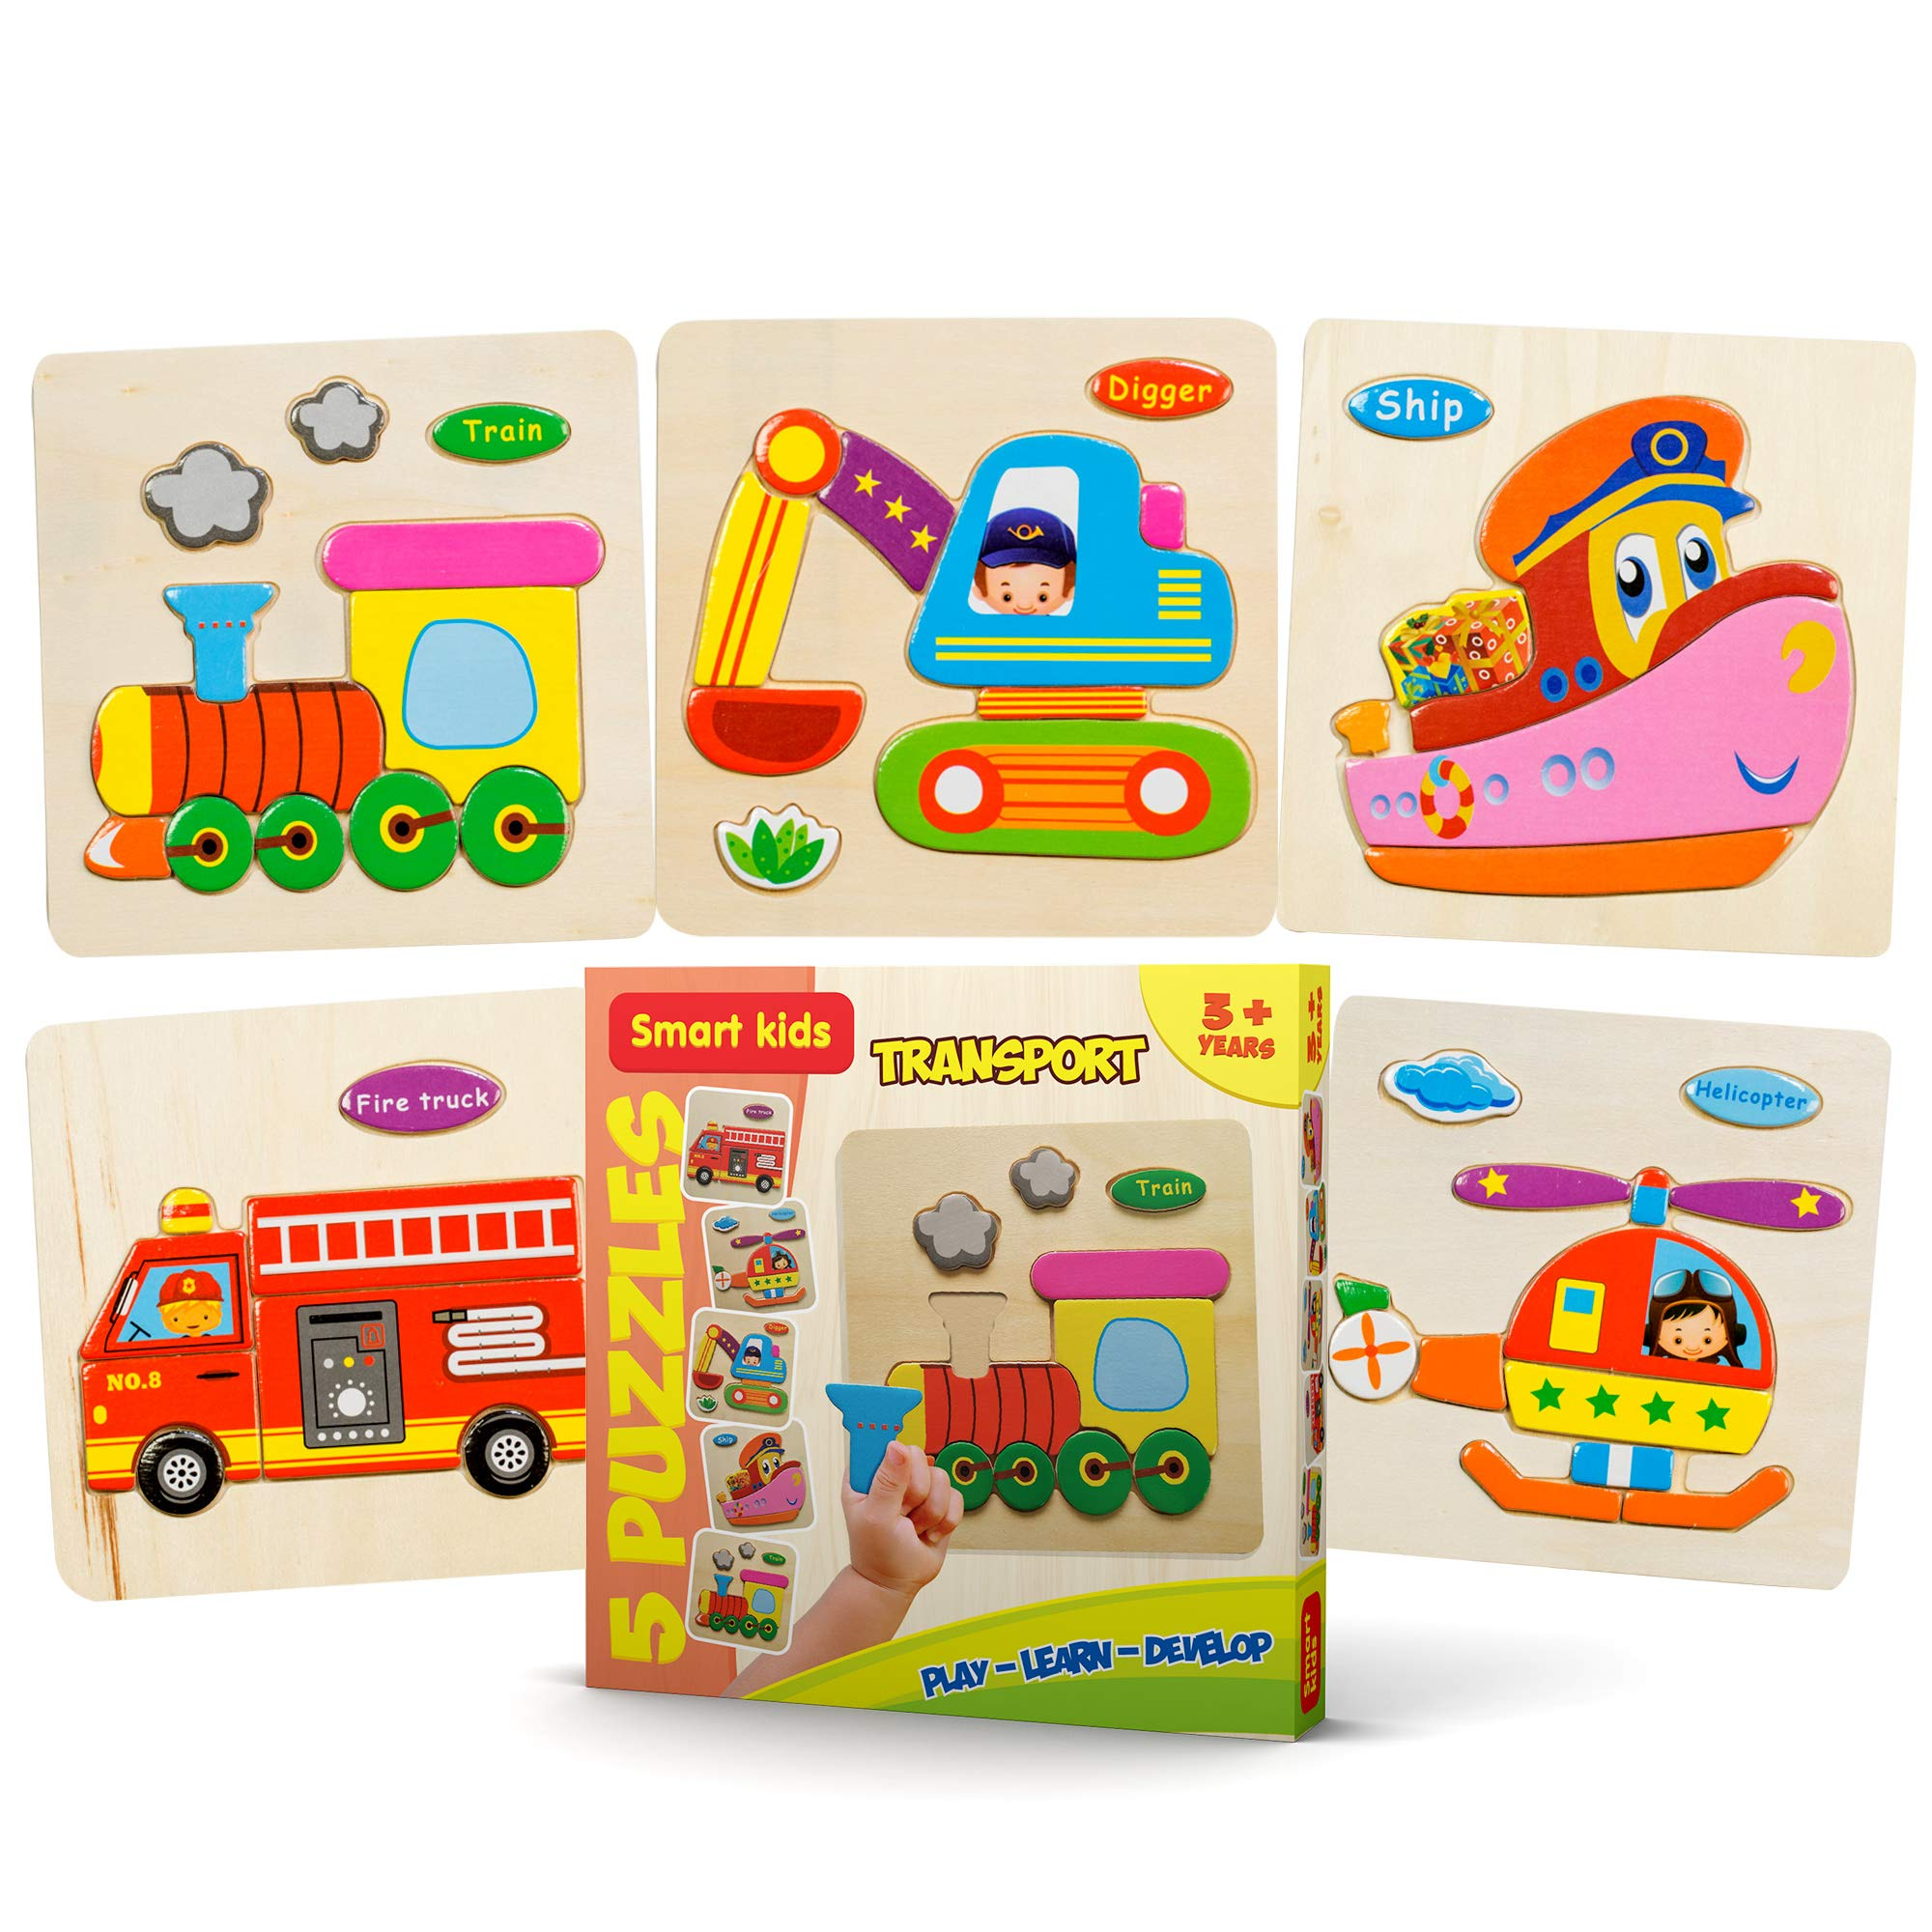 Wooden Puzzles for Toddlers - New set of 5 kids puzzles - Baby puzzles age 3+ Toddlers Puzzles for Boys and Girls - TRANSPORT set - Train - Helicopter - Fire truck - Ship - Digger - 2018 NEW (43 pcs.)